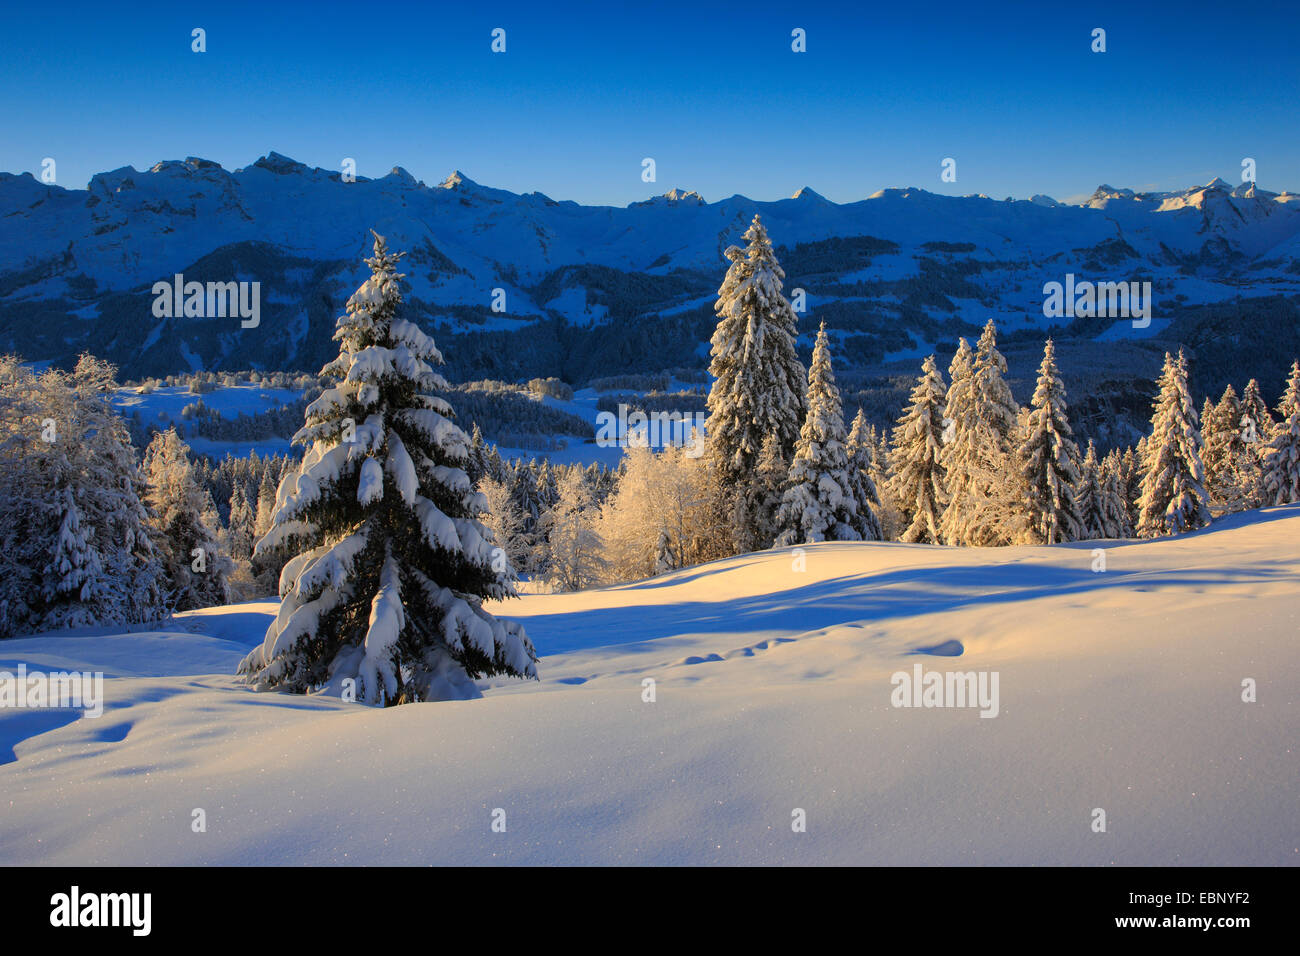 snowy mountain scenery of Central Swiss Alps in morning light, Switzerland - Stock Image